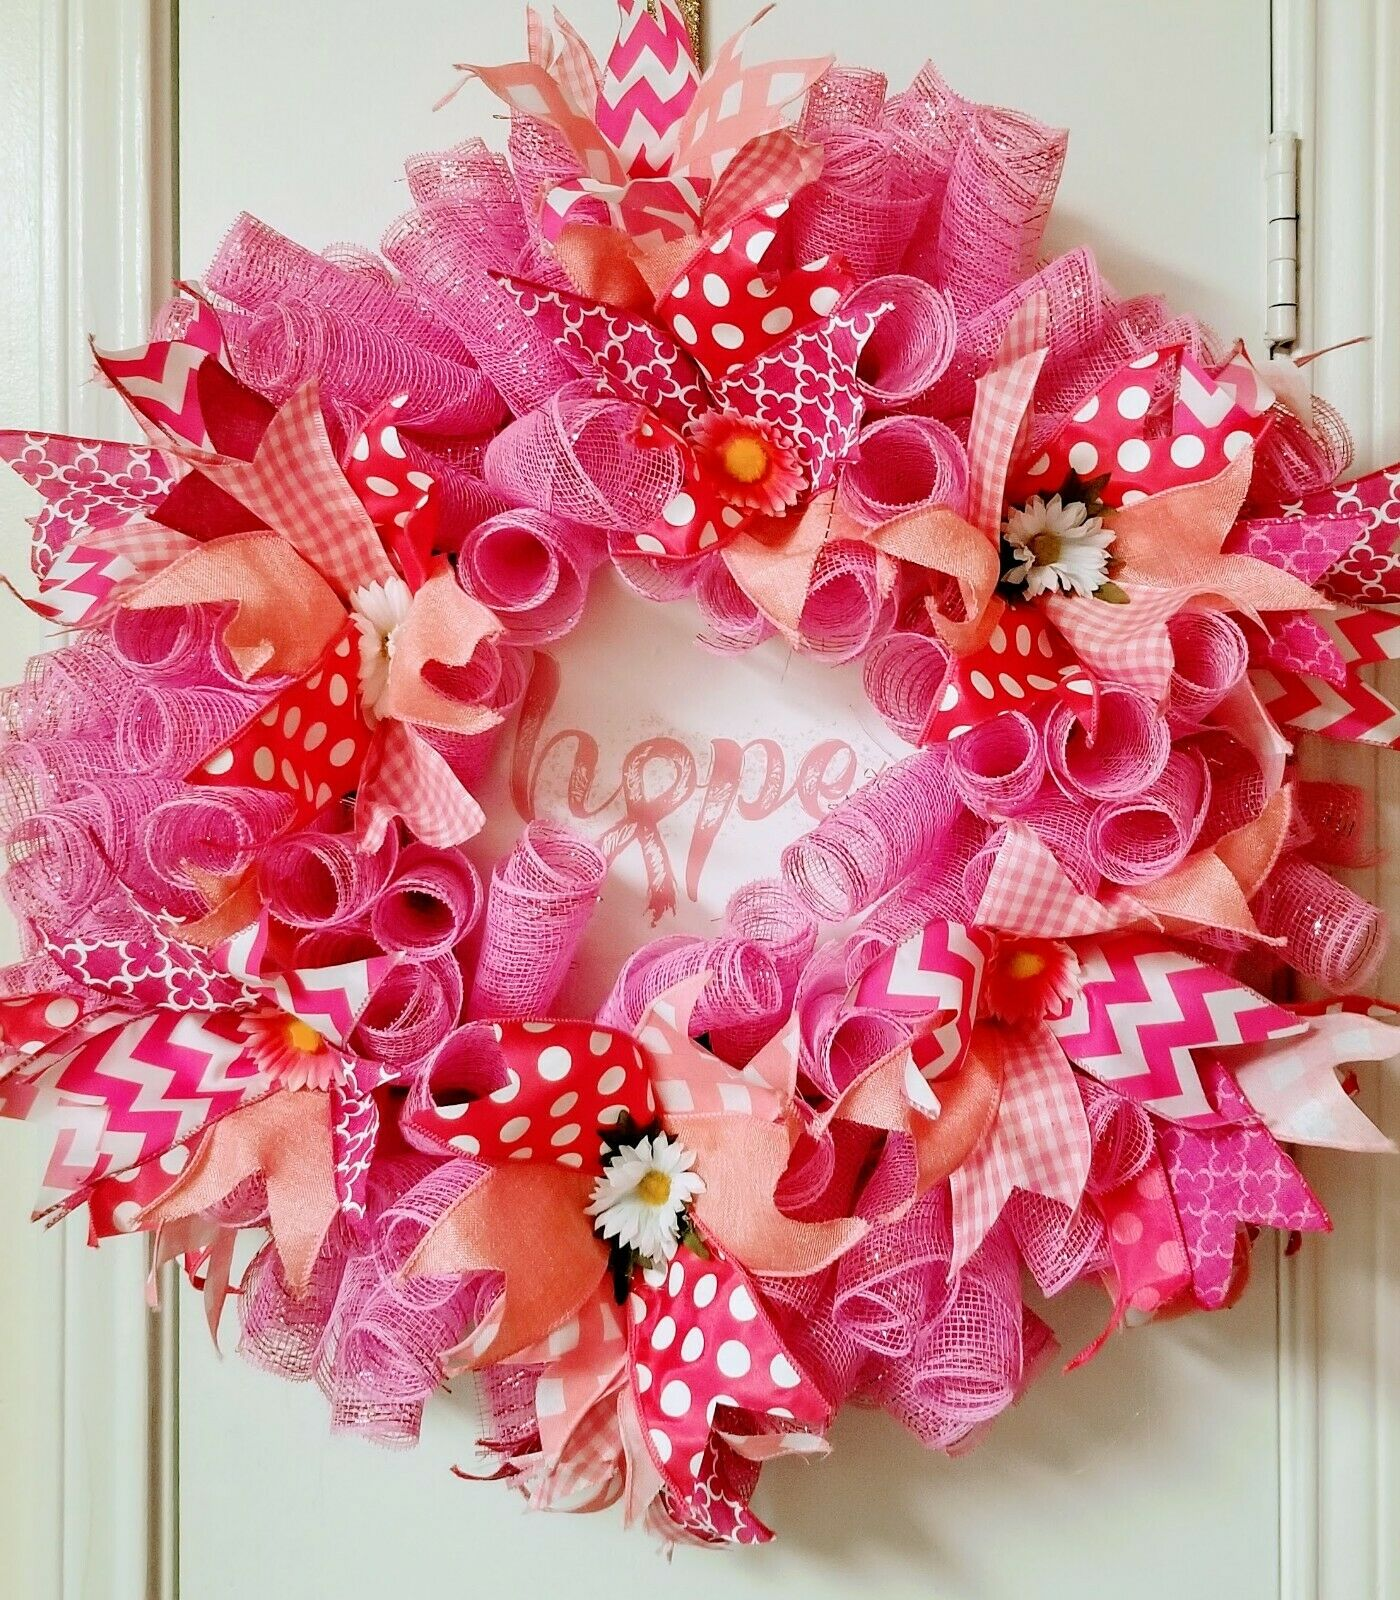 Hope for a Cure Breast Cancer Awareness Deco Mesh Wreath